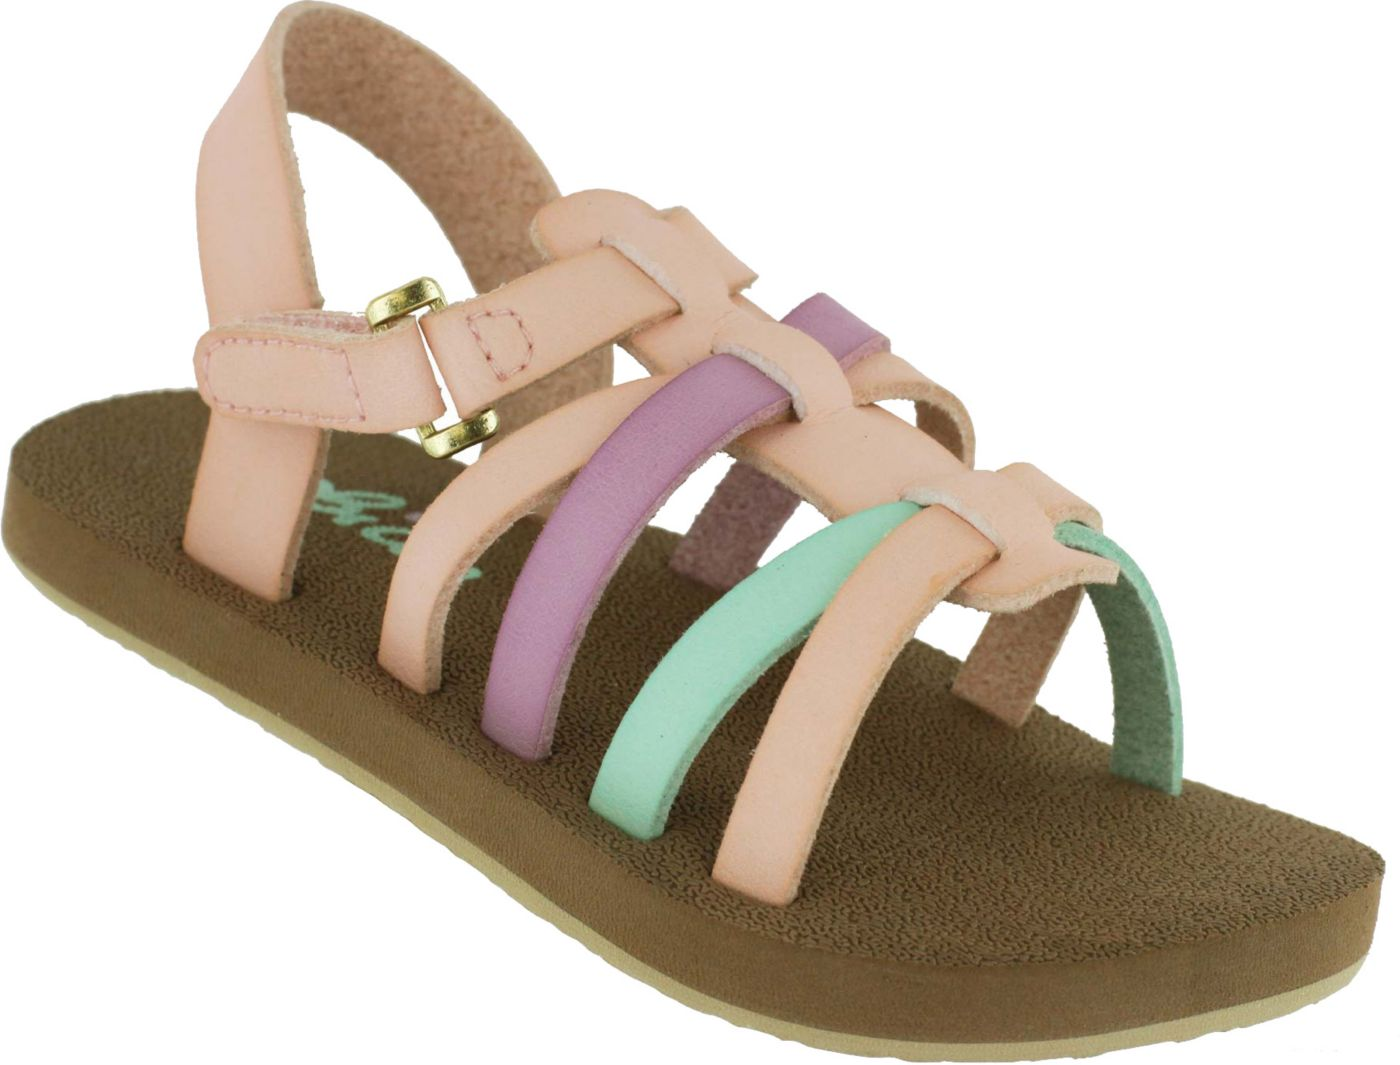 Cobian Toddler Sophia Sandals